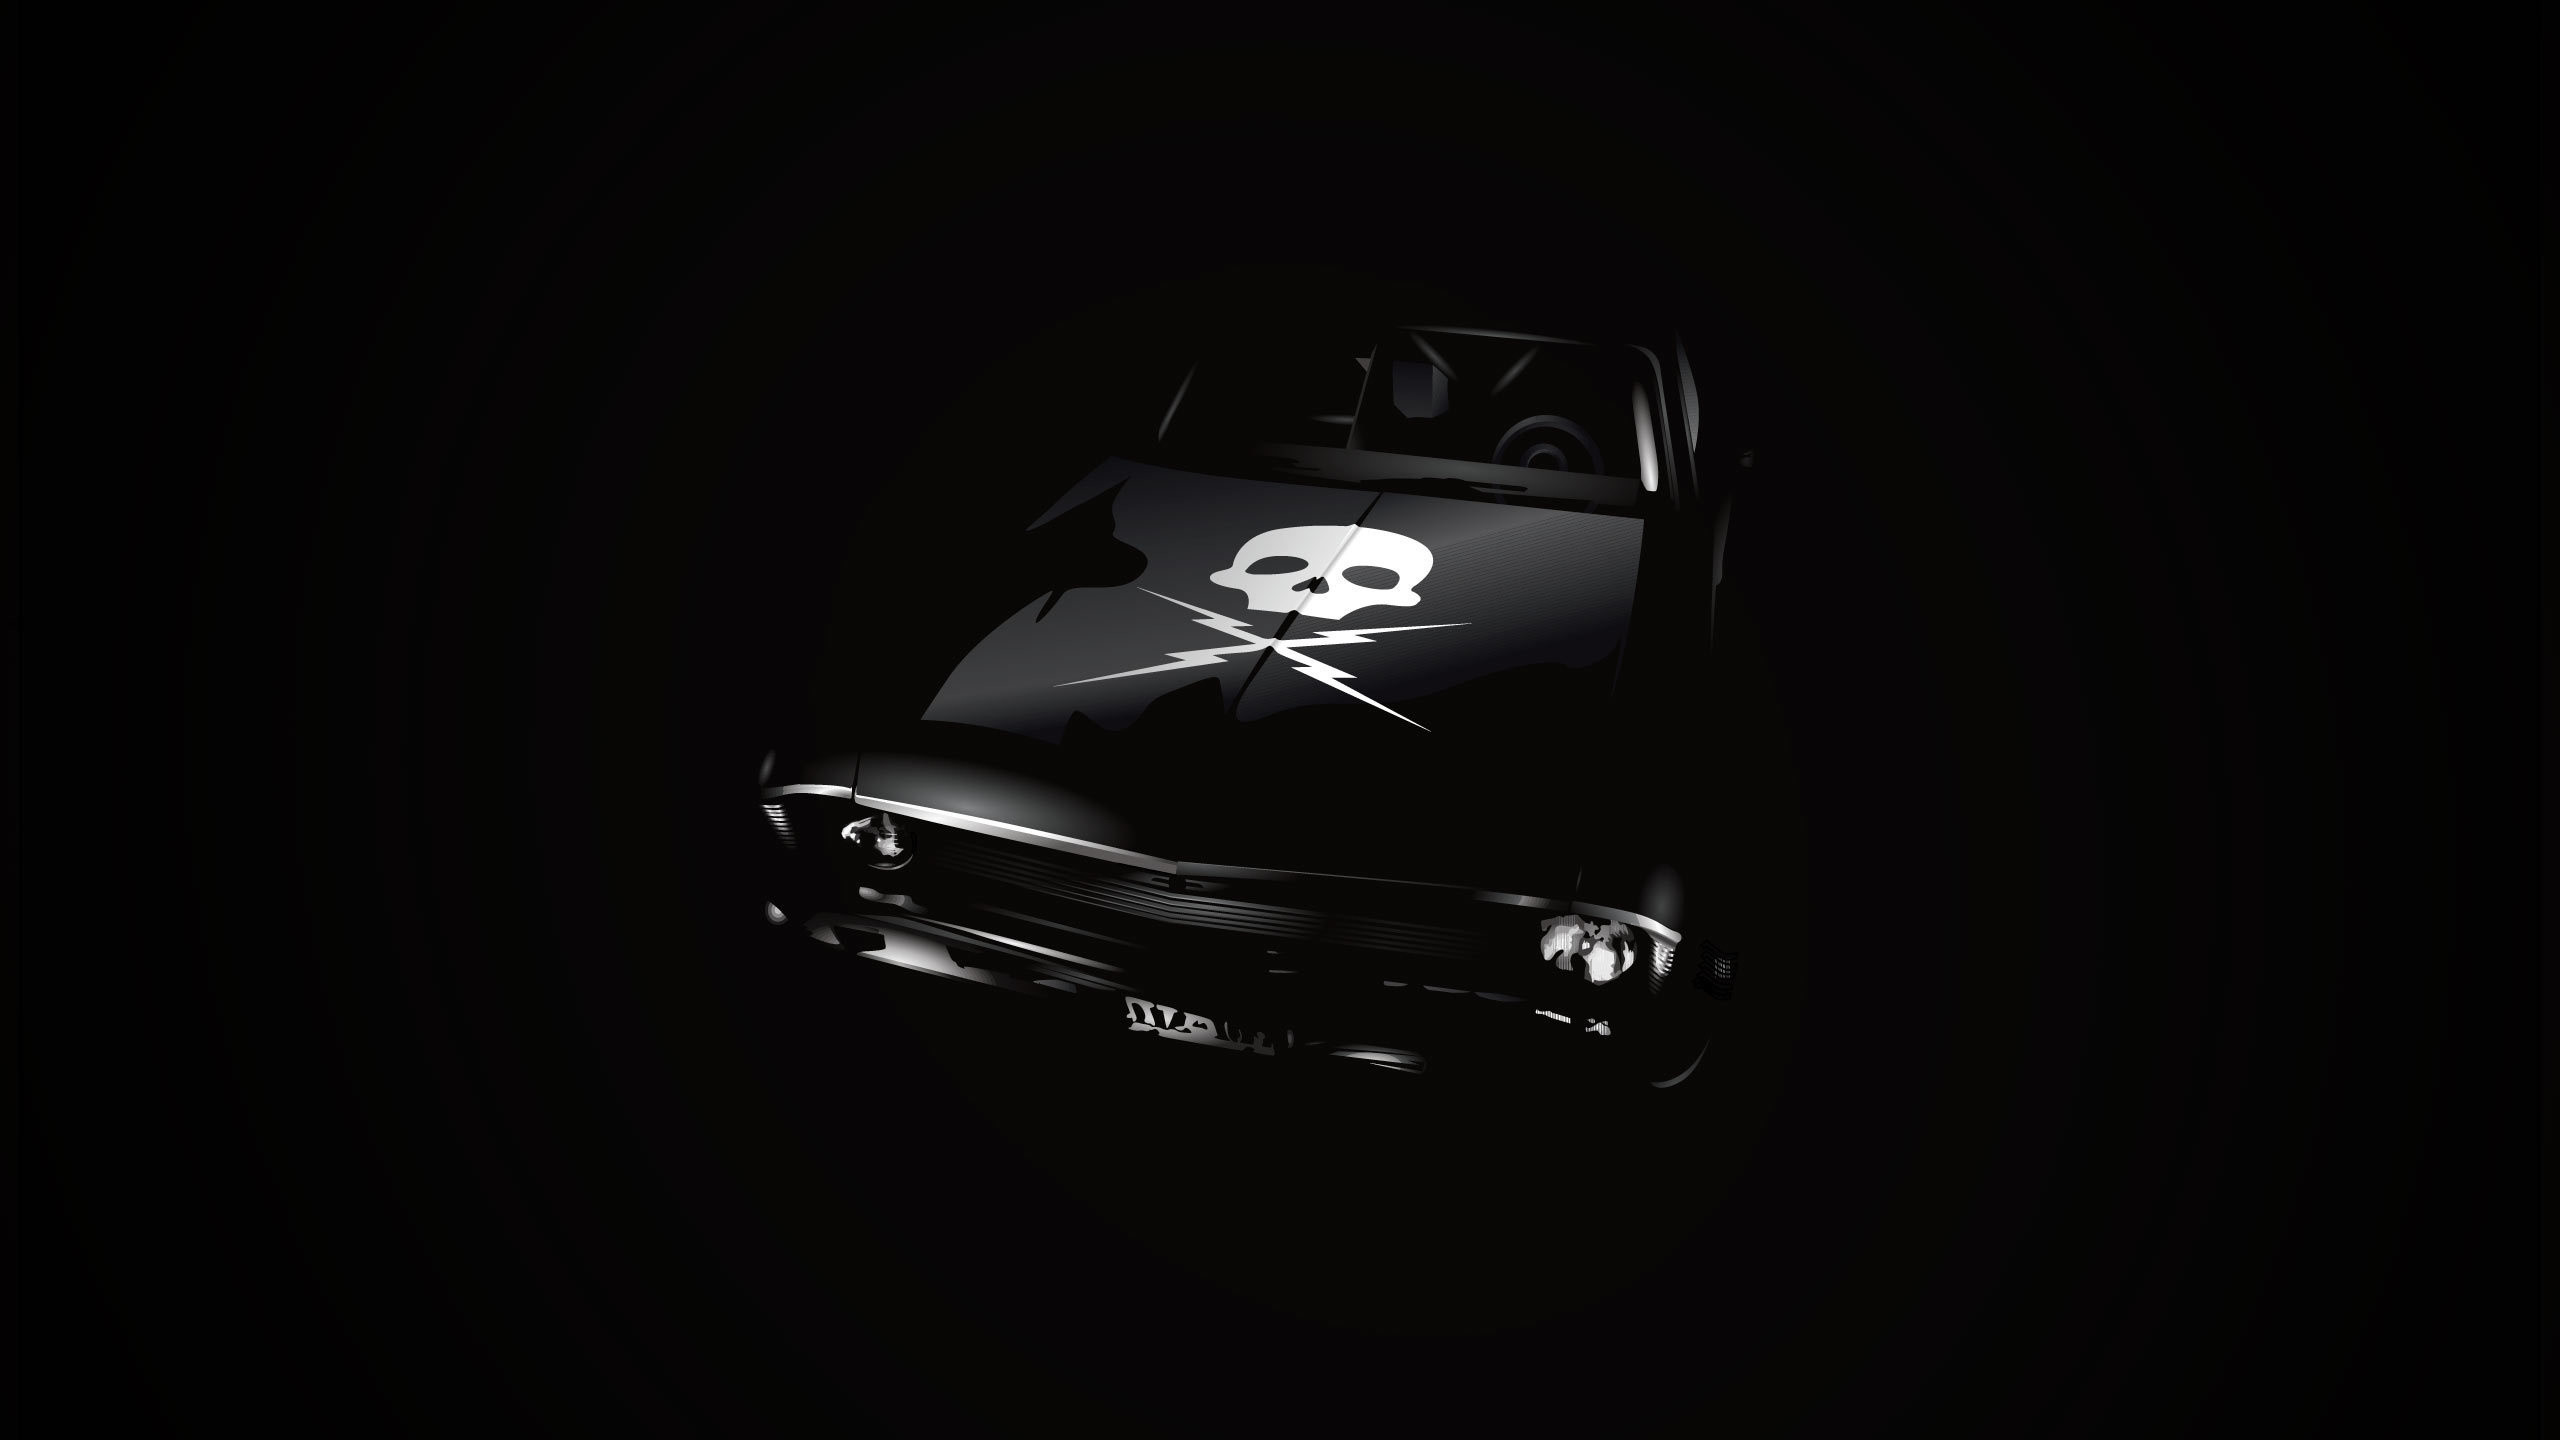 death proof, death proof, skull, Chevrolet, nova